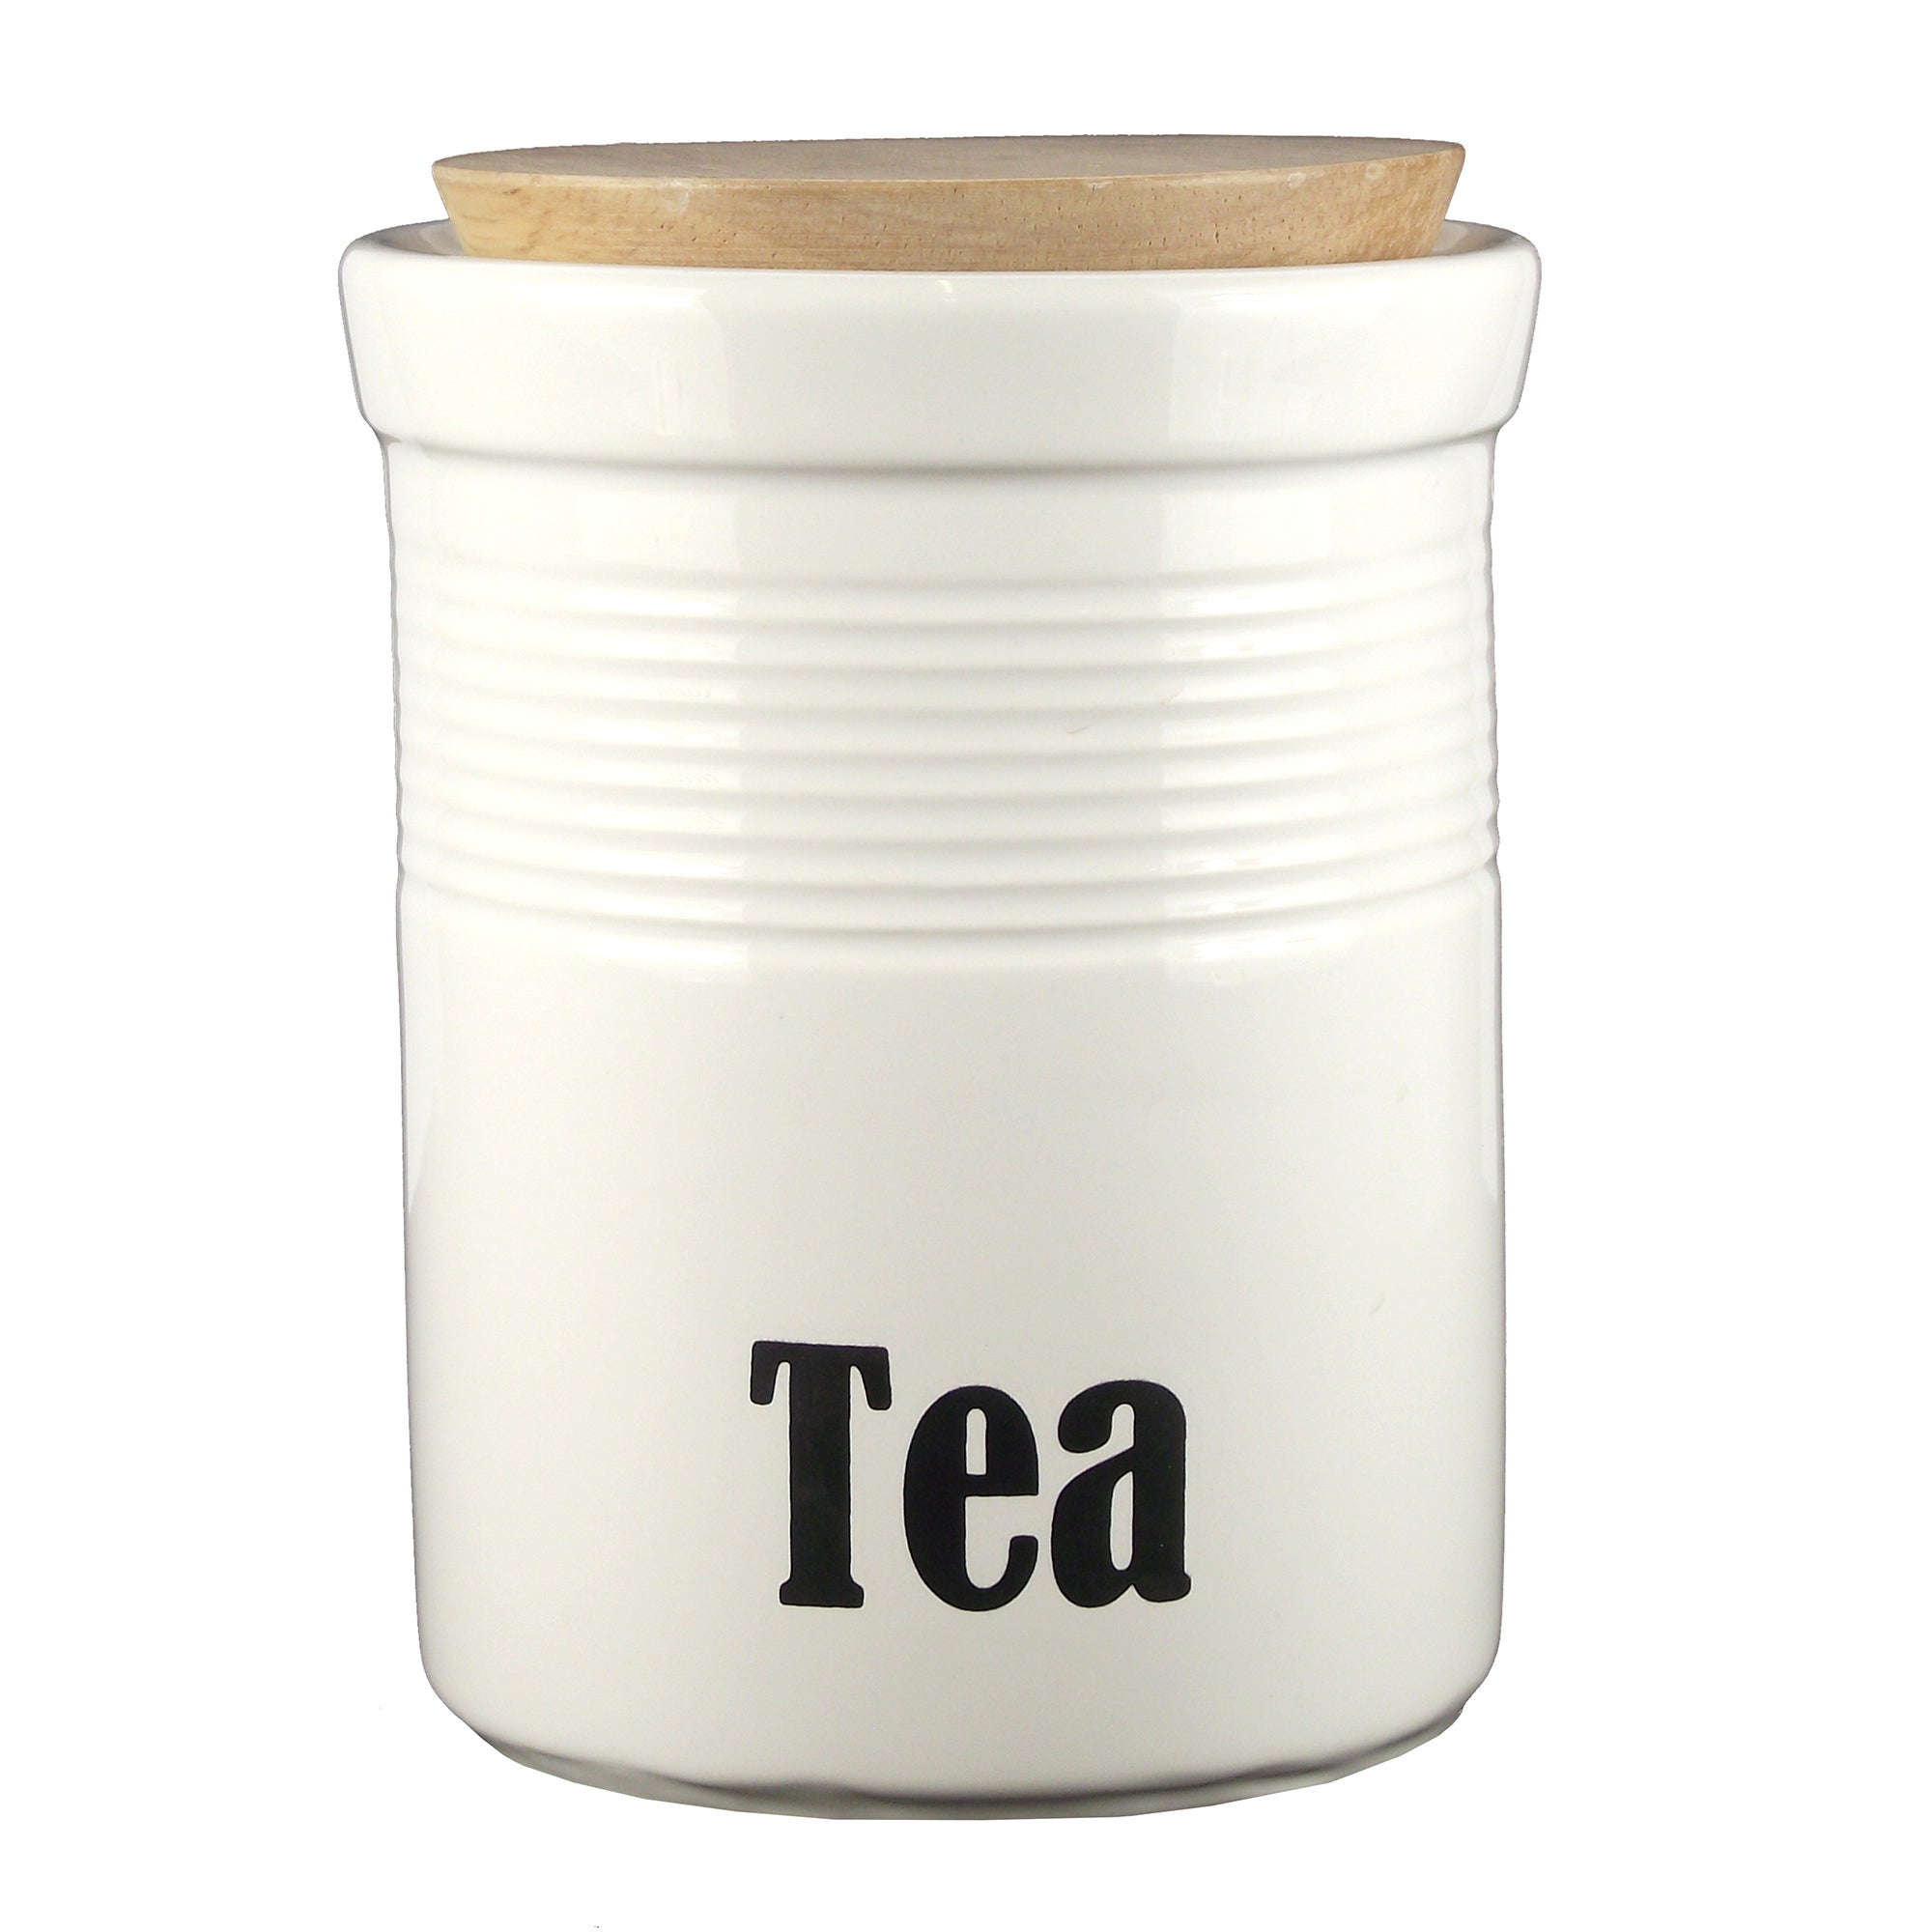 Back to Basics Collection Tea Canister